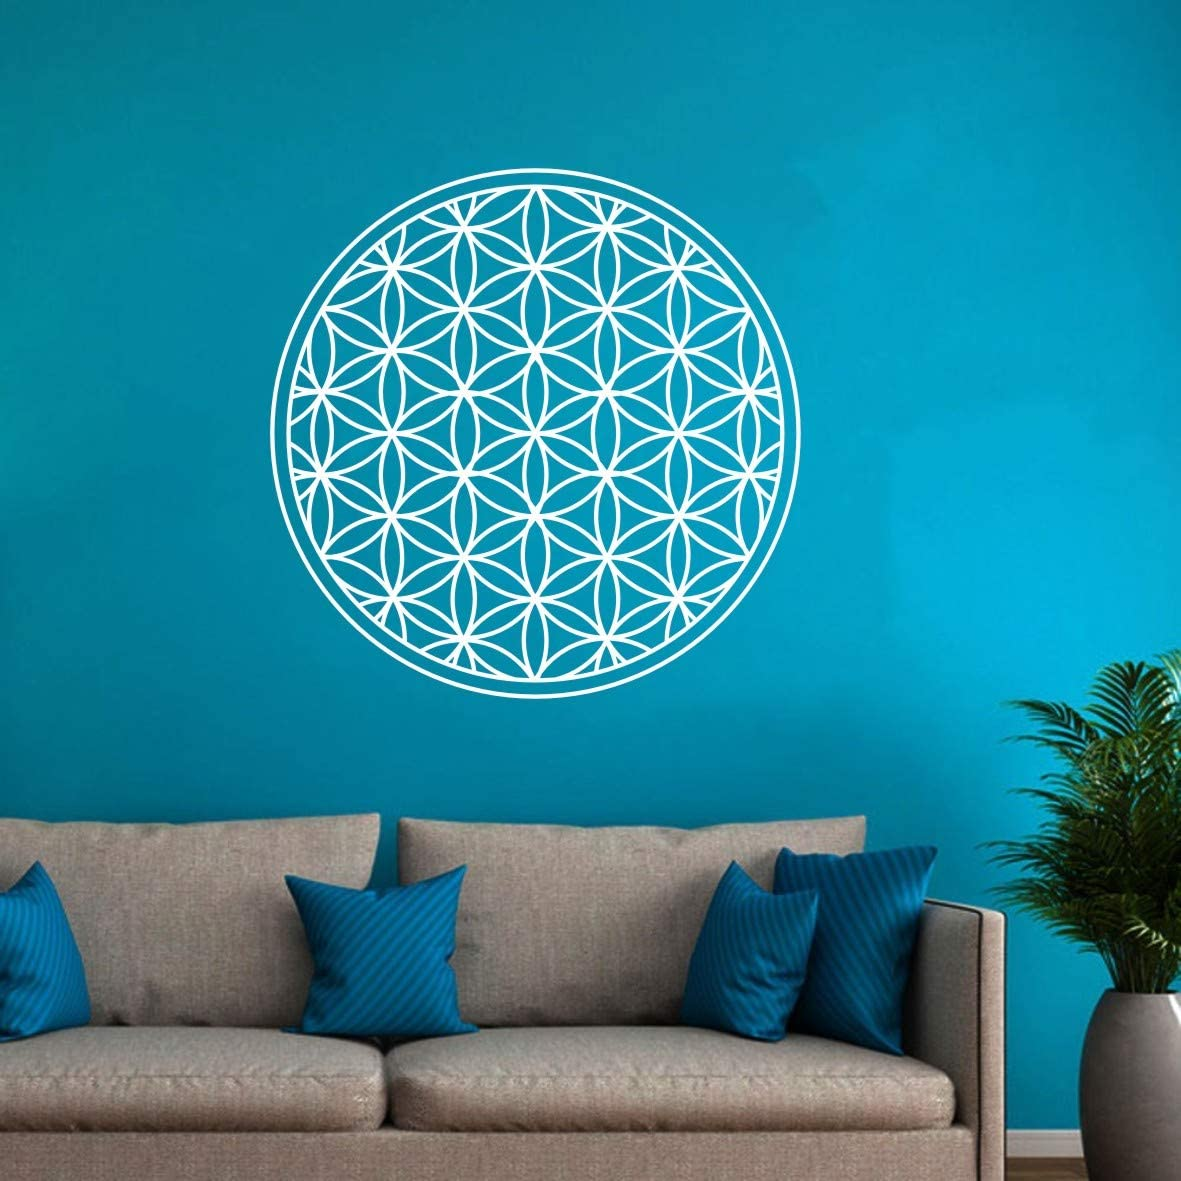 Removable Geometric Round Flower of Life Tree Life Wall Decor Sticker Art Vinyl Bedroom Living Room Wall Decal FD026 (White, 22X22INCH)